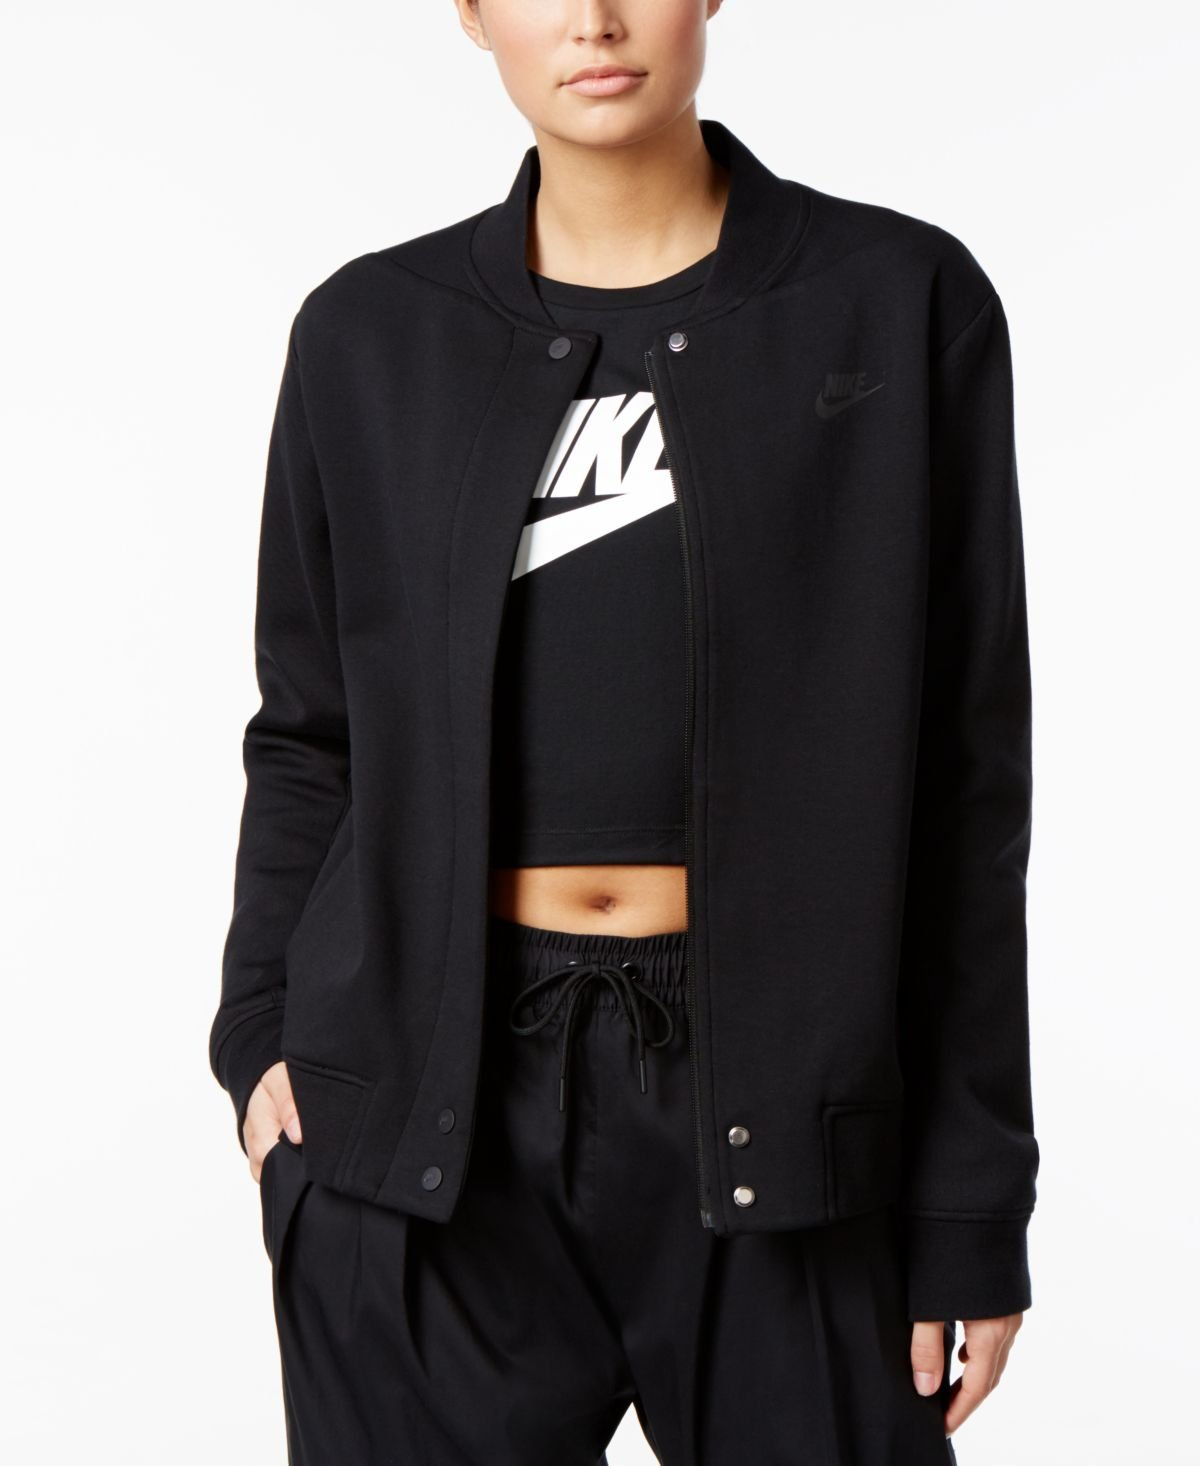 Women's Nike Tech Fleece Destroyer Jacket by NIKE